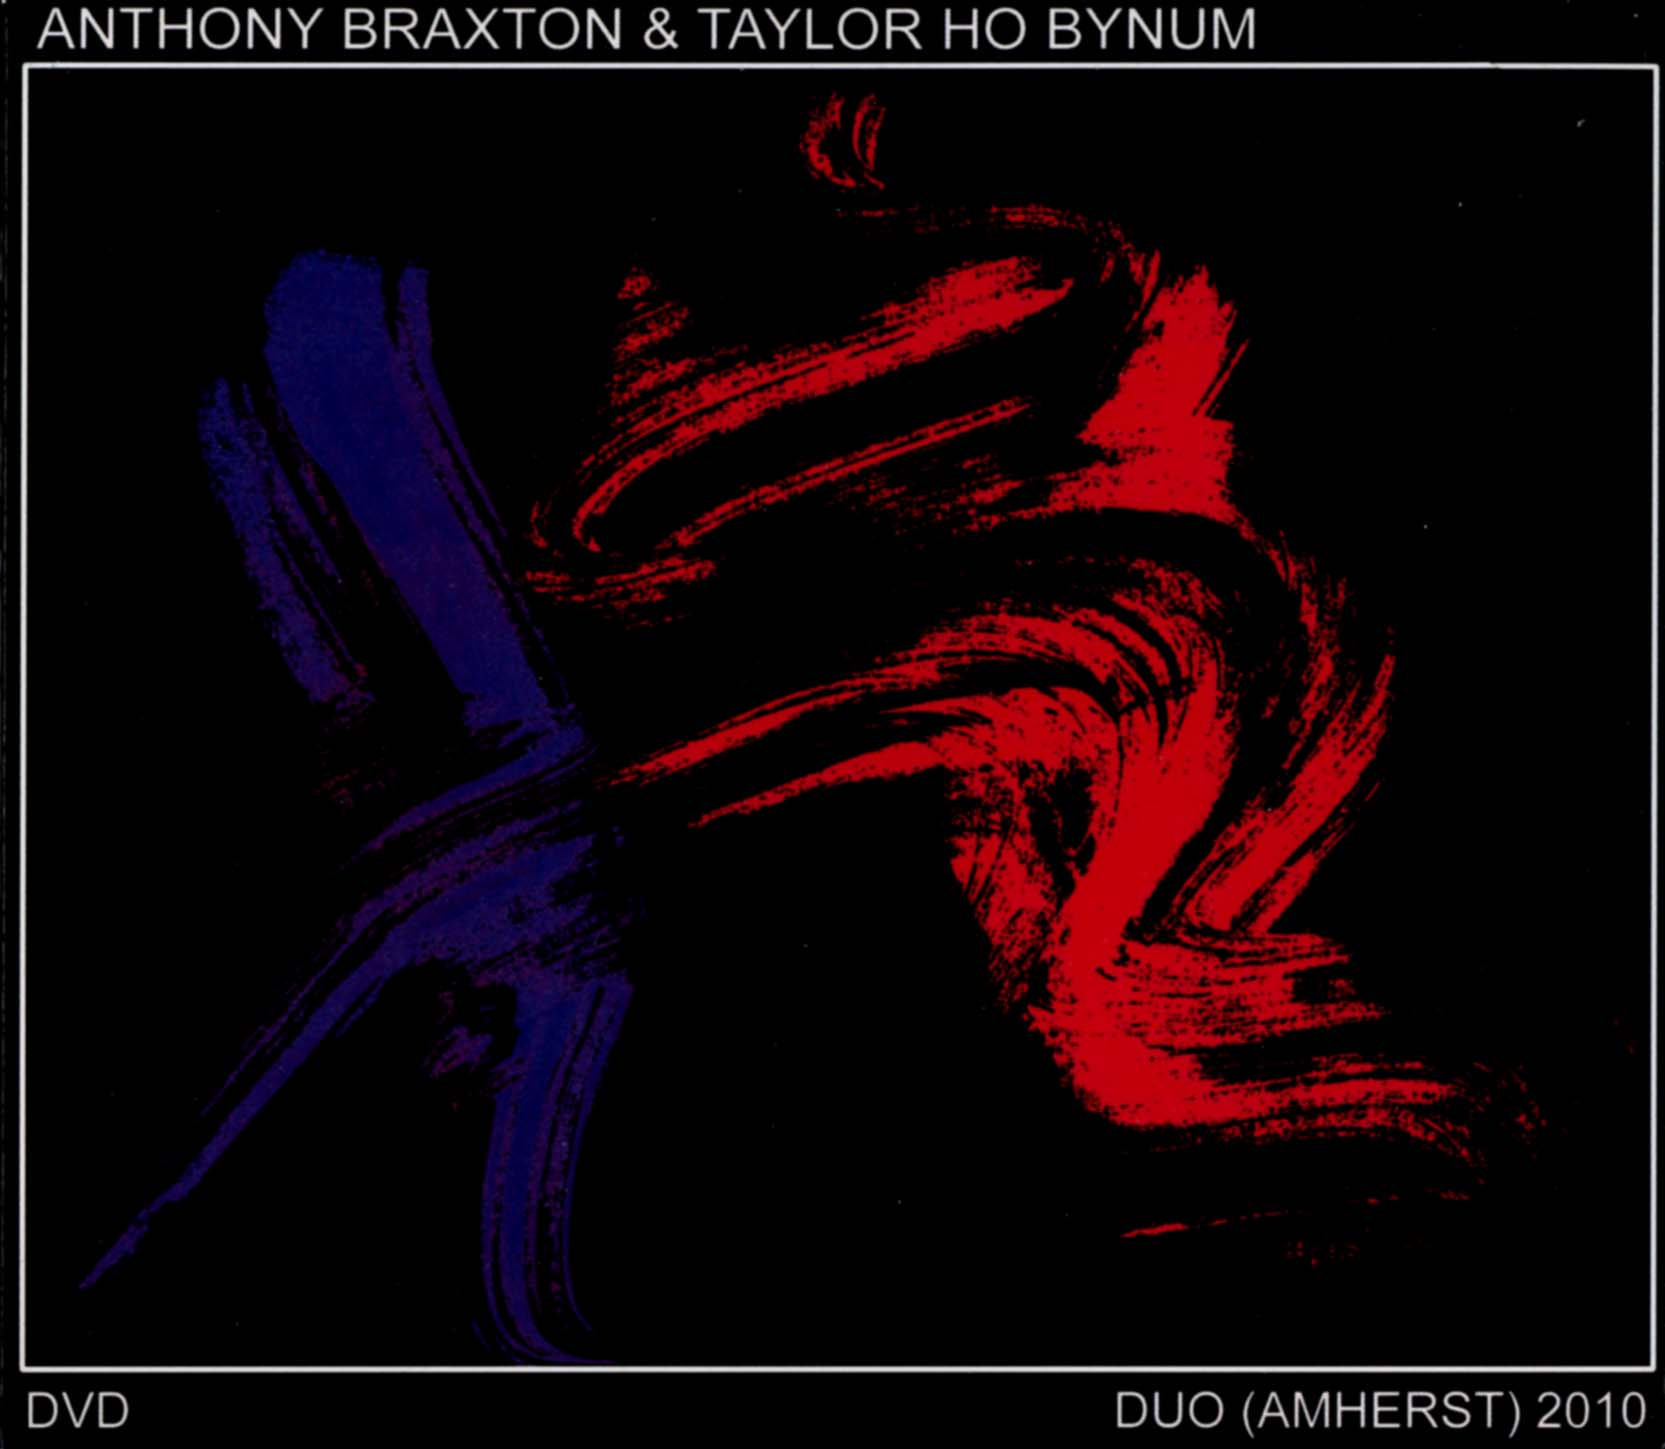 Anthony Braxton/Taylor Ho Bynum: Duo (Amherst) 2010